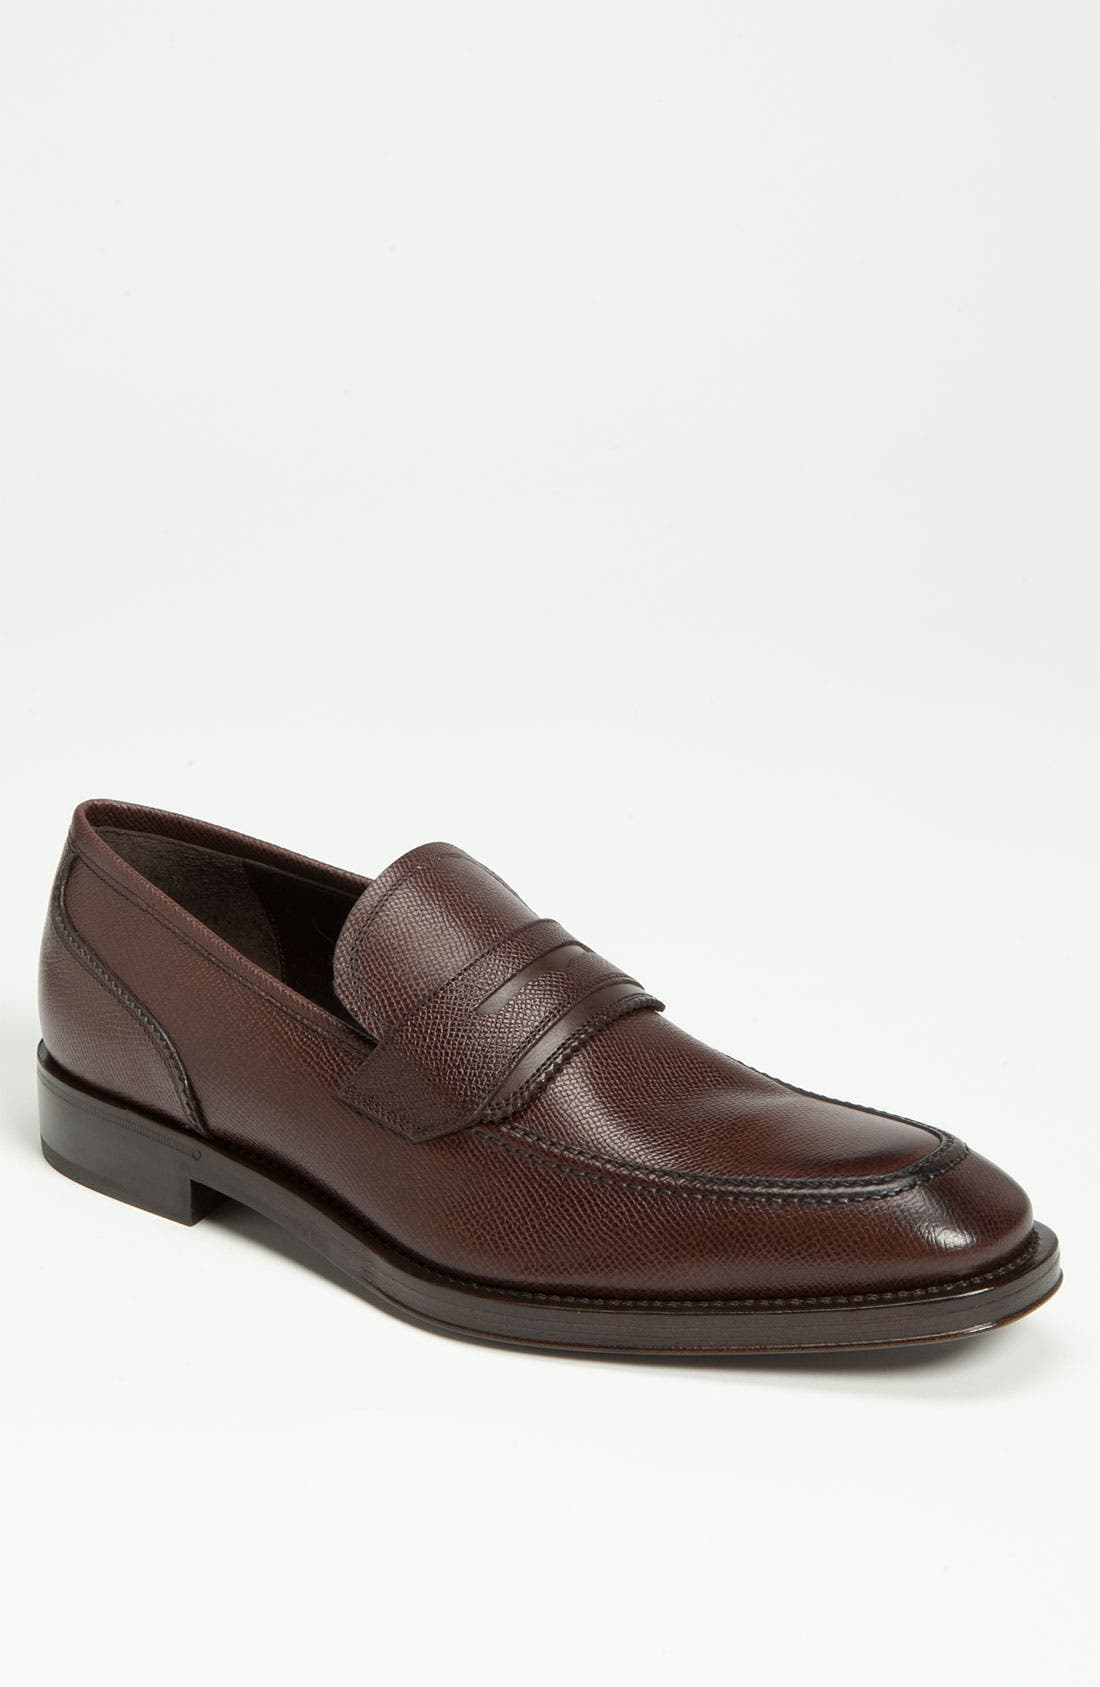 Main Image - Salvatore Ferragamo 'Atene' Loafer